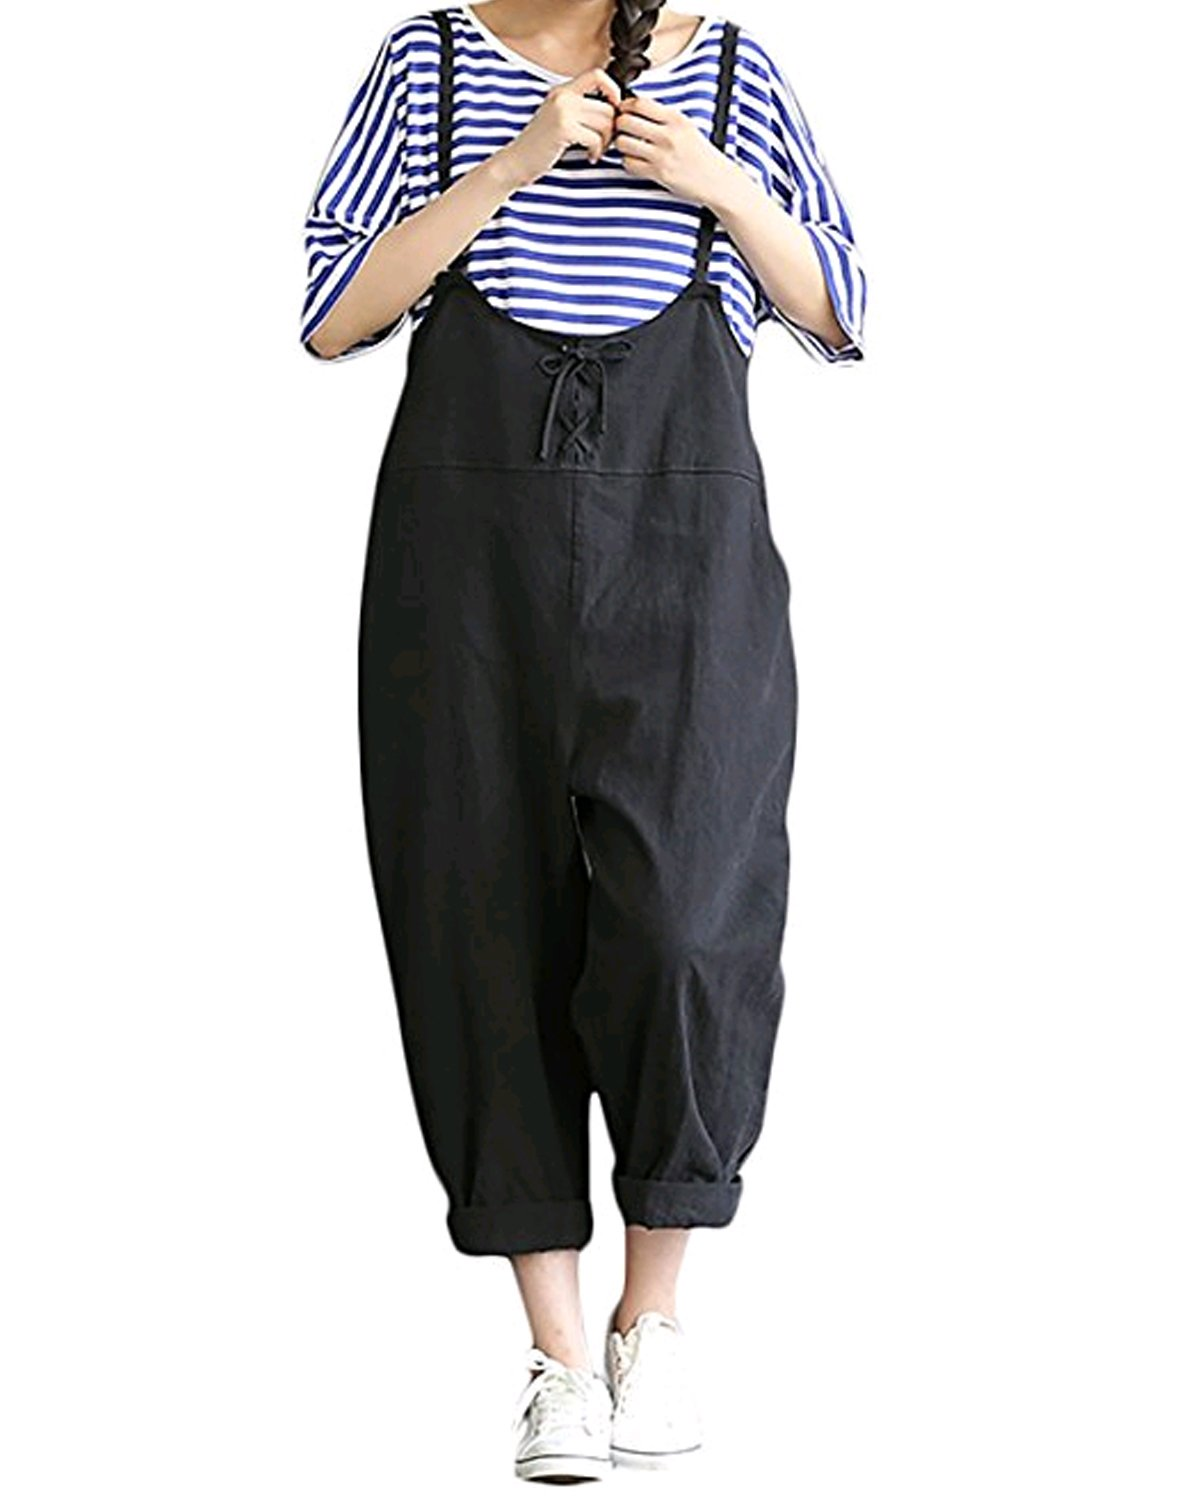 GZBQ Overalls for Women Casual Cotton Jumpsuit Plus Size Baggy Bib Wide Leg Overalls Pants Black 2XL by GZBQ (Image #1)